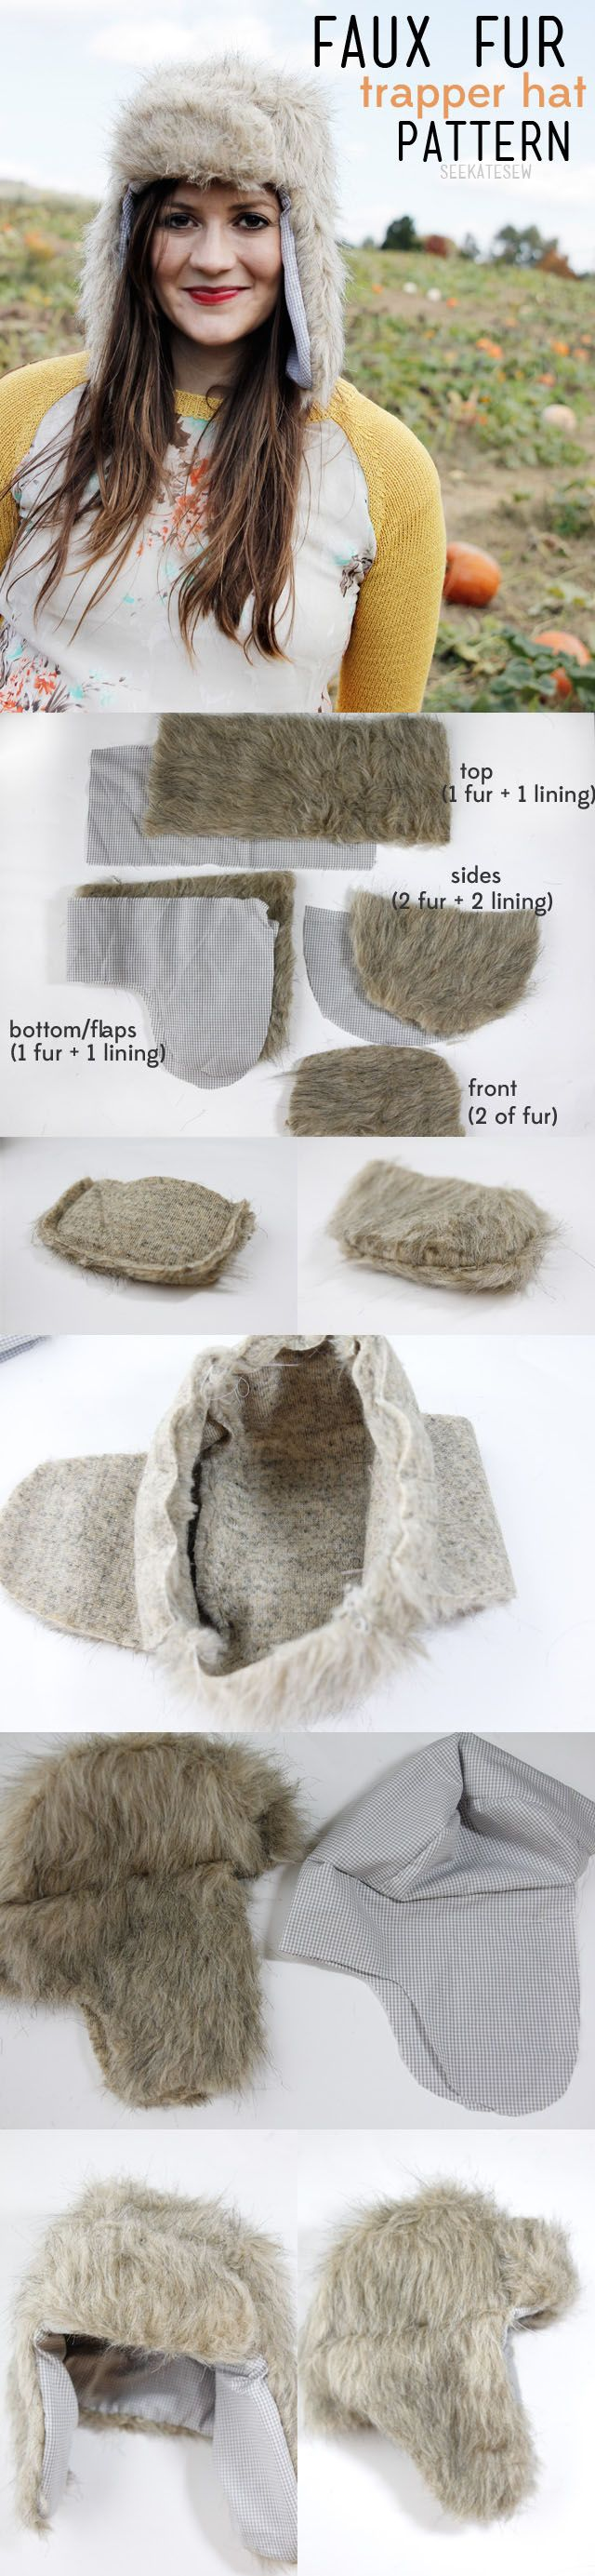 DIY Winter Crafts...I've been telling my co-workers I'm going to show up in a big fury Russian hat for years, this is close;)